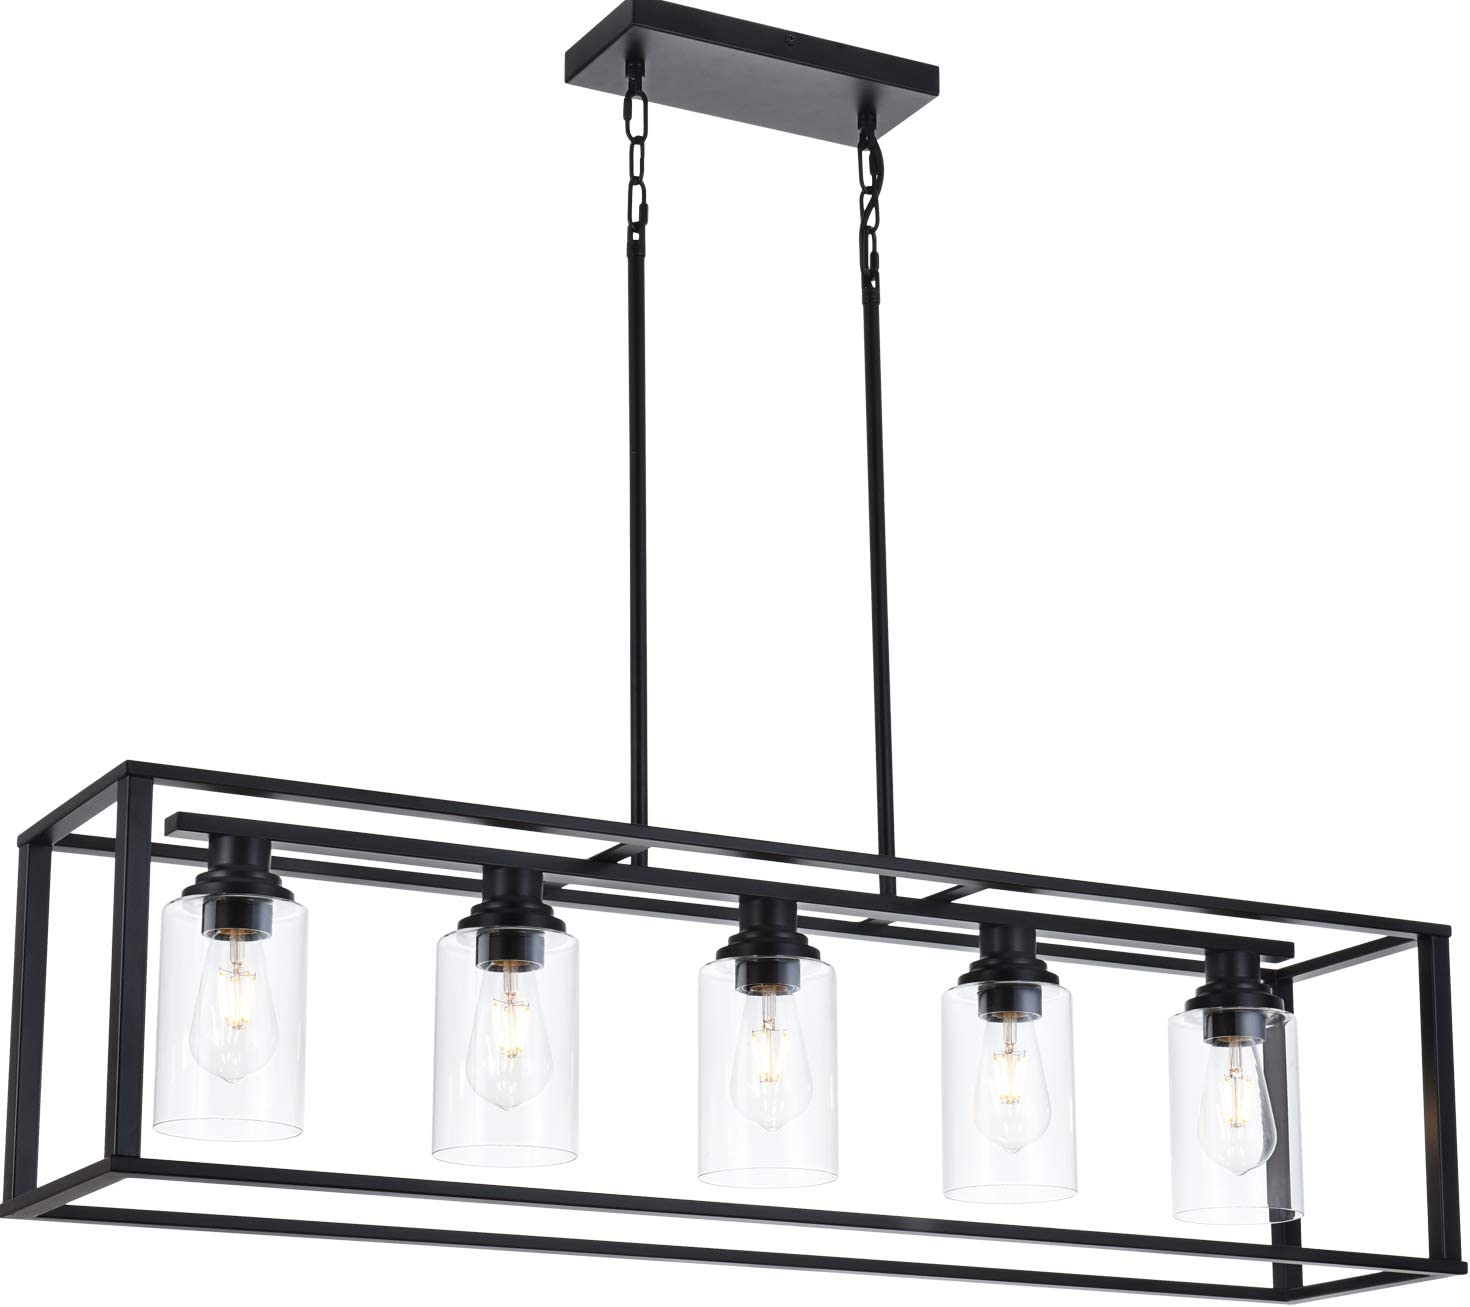 LUBURS Kitchen Island Lighting - 5 Lights Chandelier, Black Pendant Lighting with Metal Adjustable Rods&Clear Glass Shade, Vintage Pendant Ceiling Lamp for Dining Room Kitchen Living Room Farmhouse - -